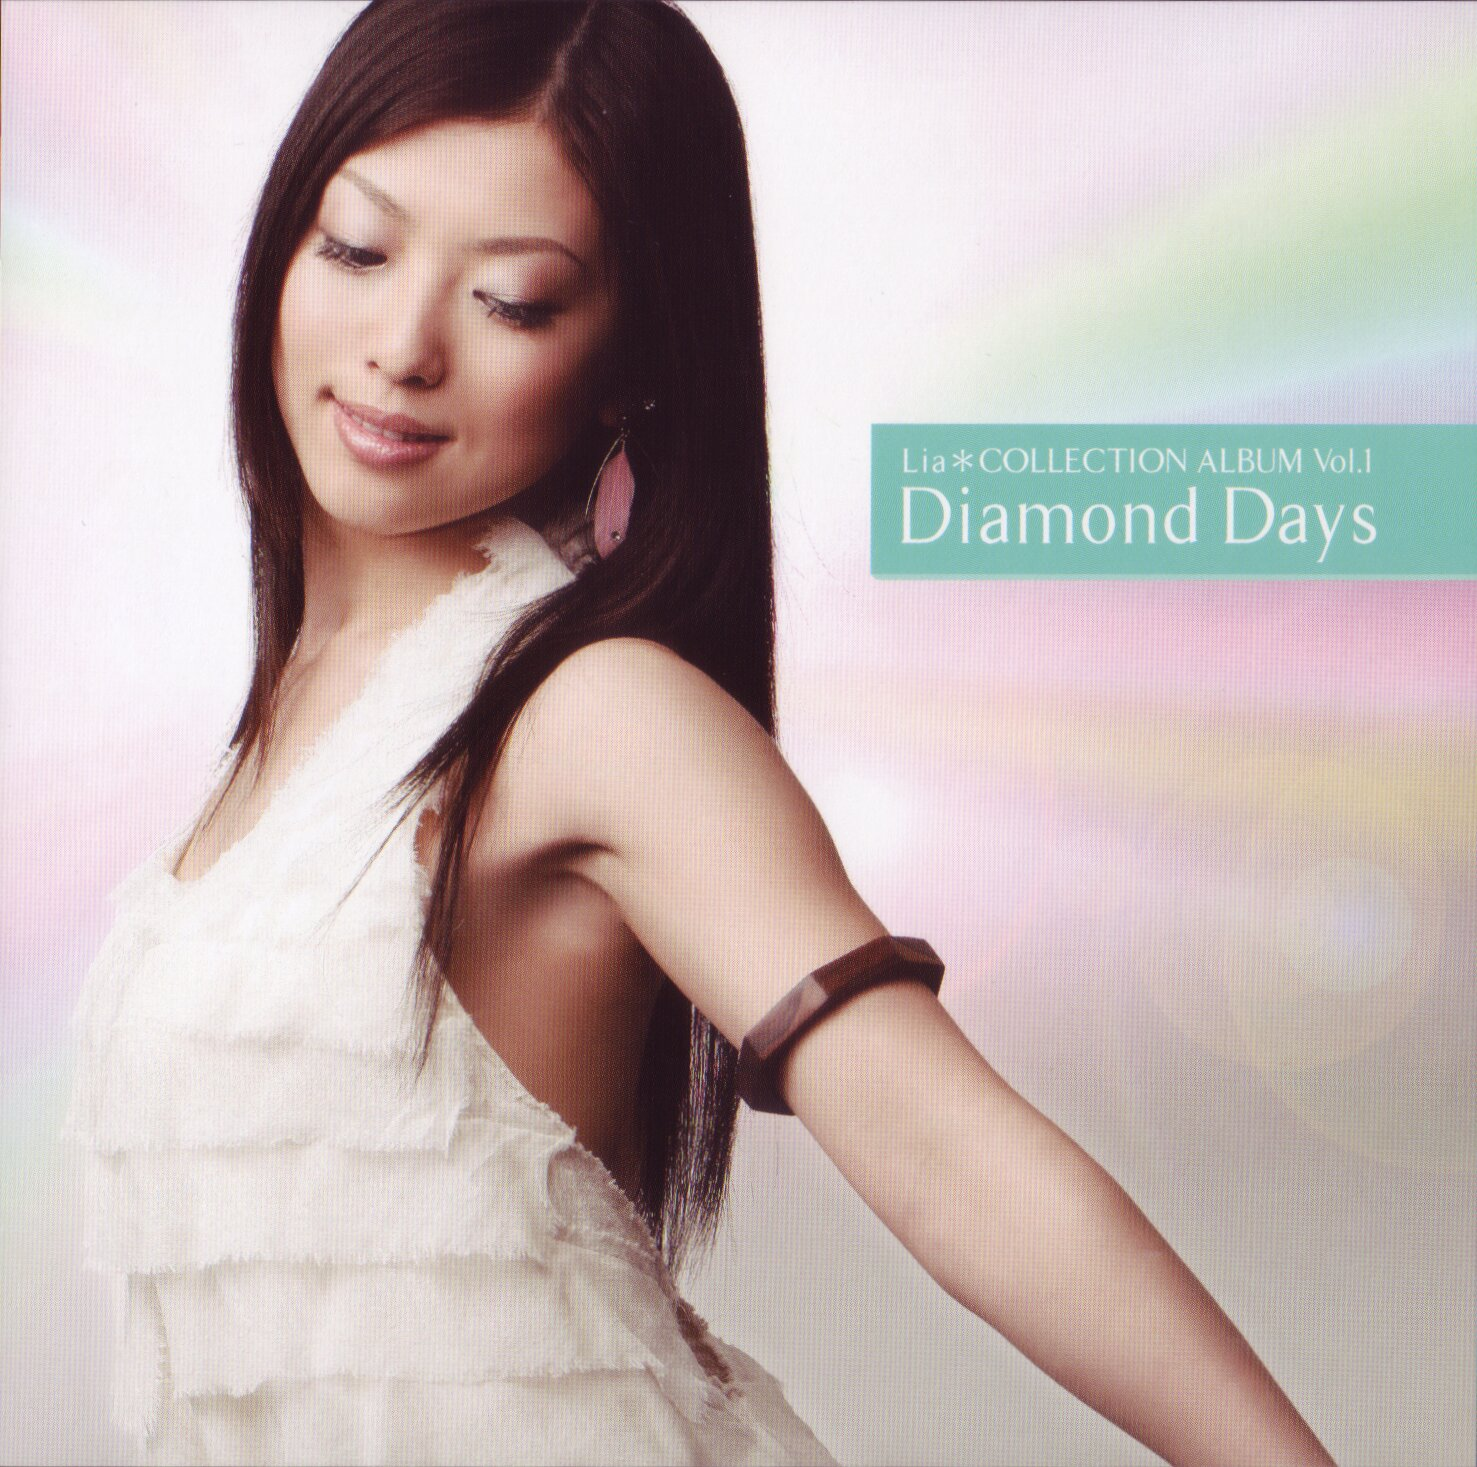 Lia*COLLECTION ALBUM Vol.1 Diamond Days						Популярное